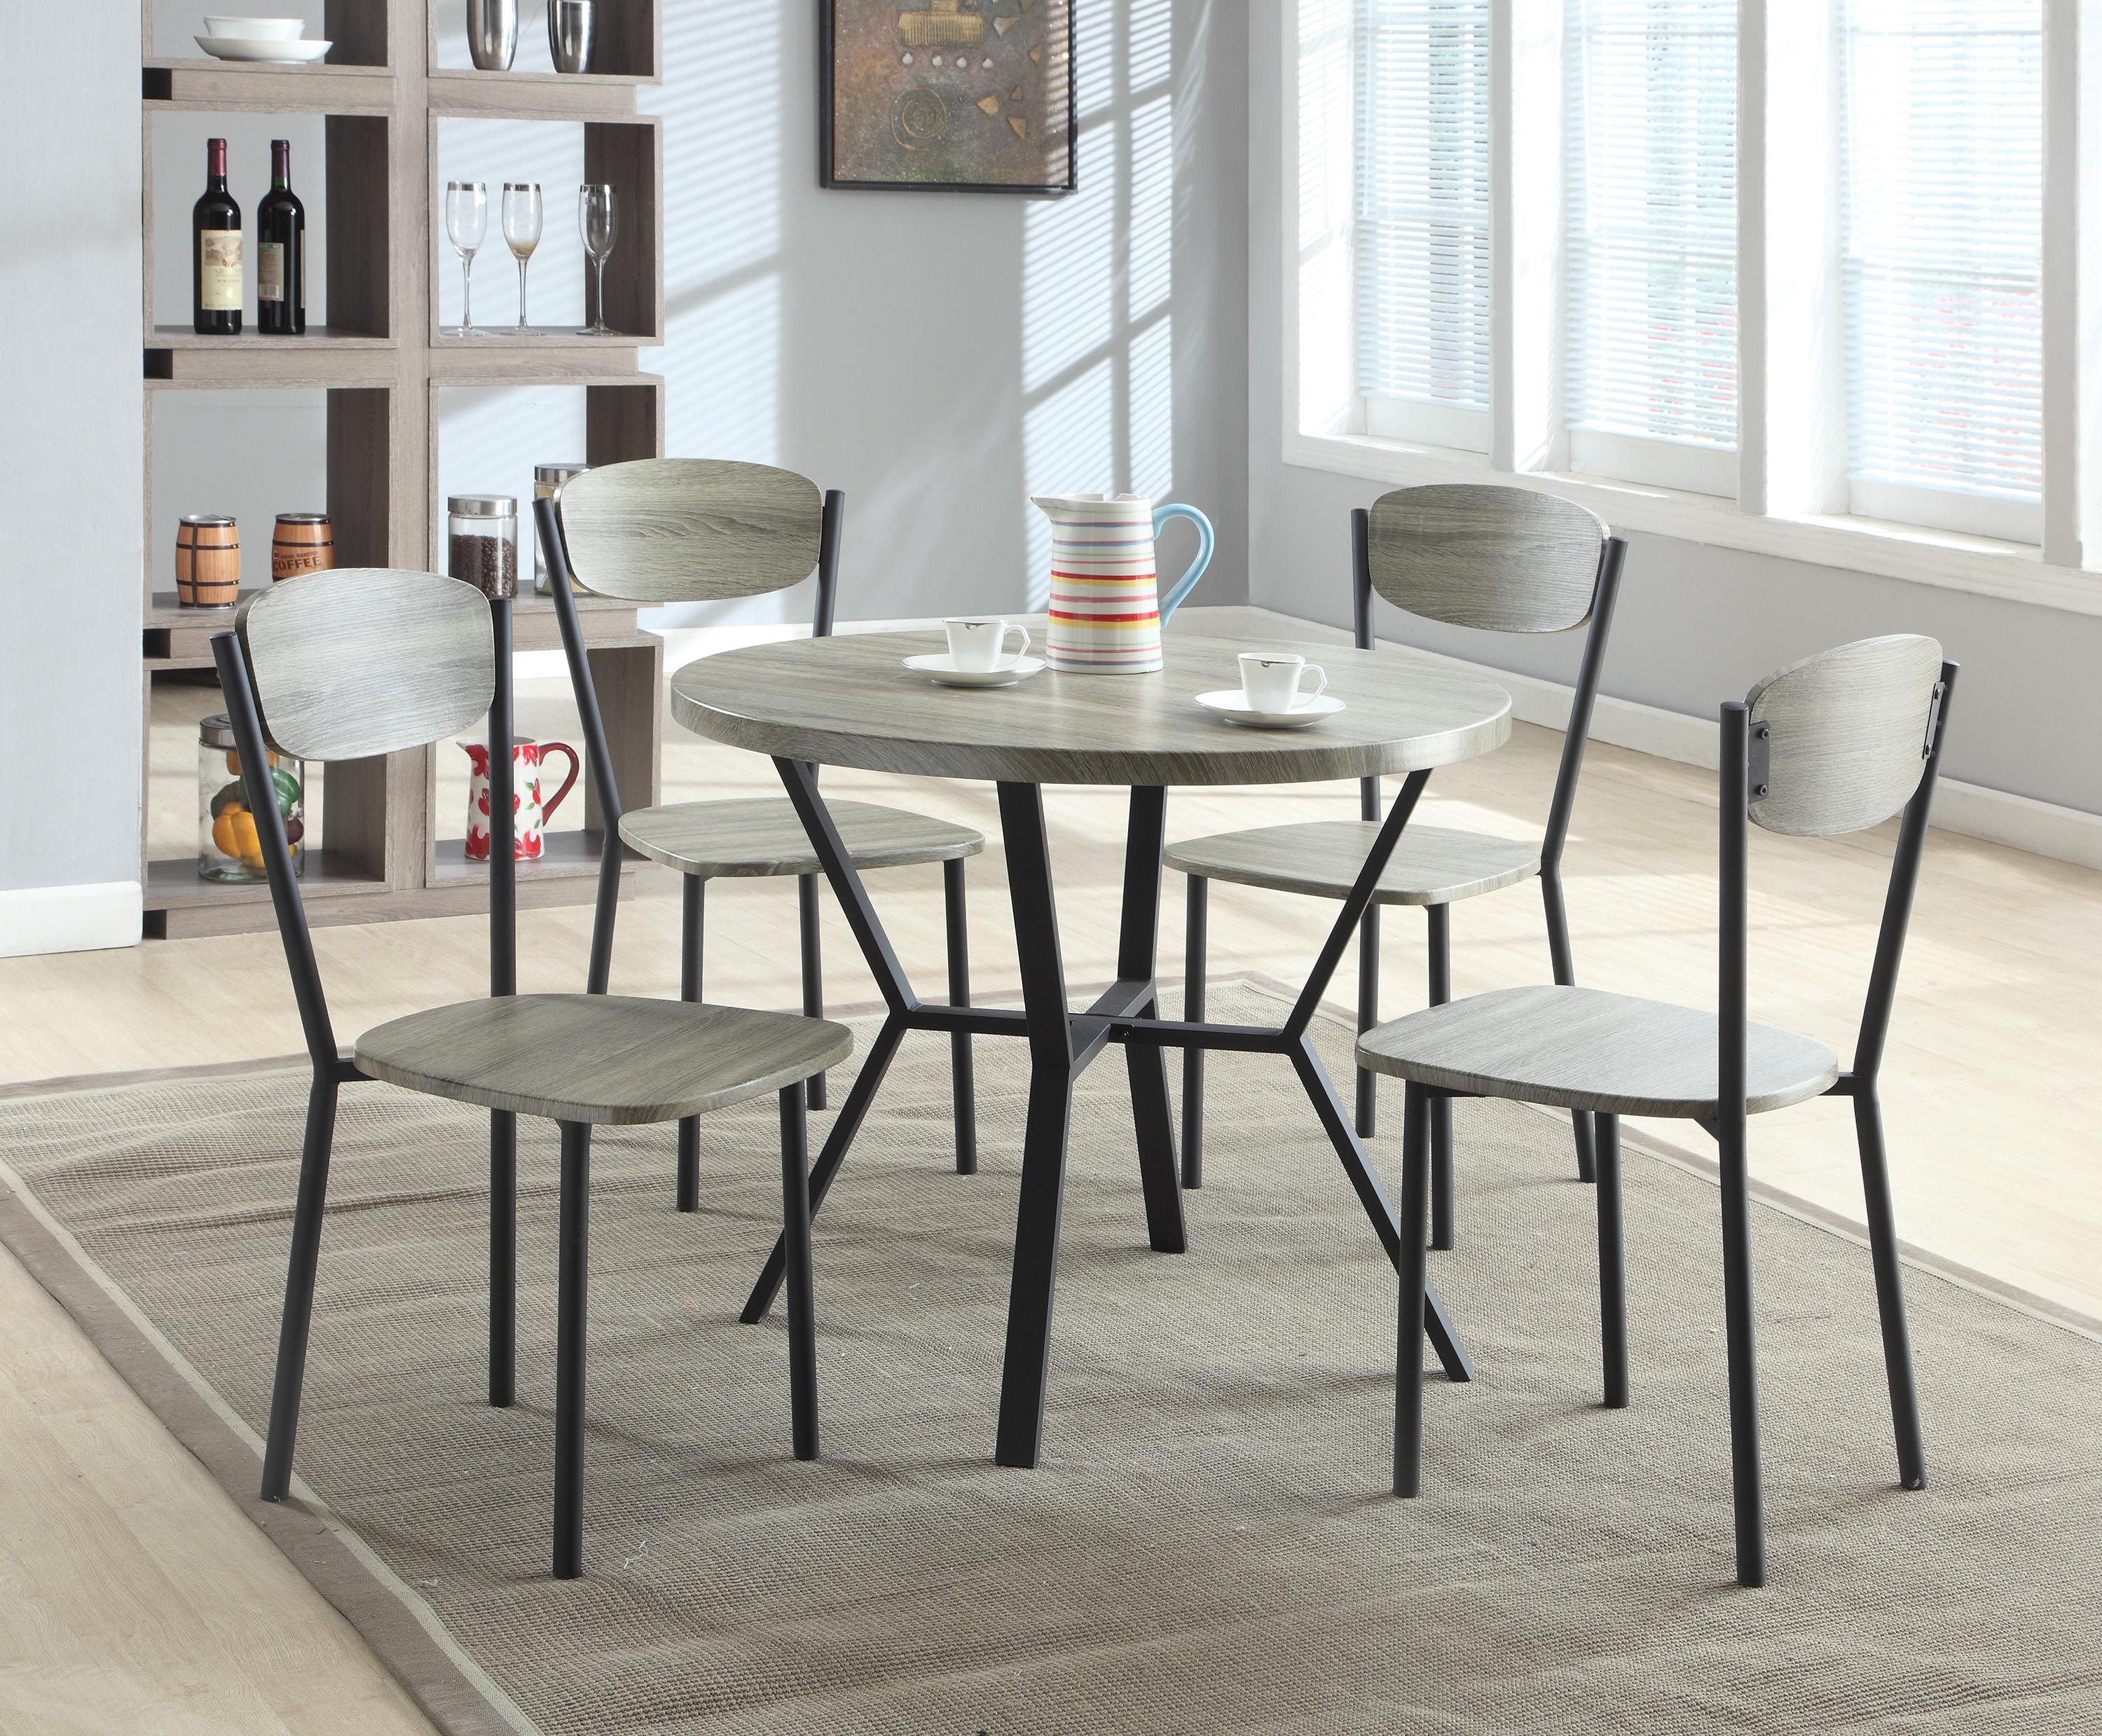 Blake 5 Piece Dining Set by Crown Mark at Northeast Factory Direct